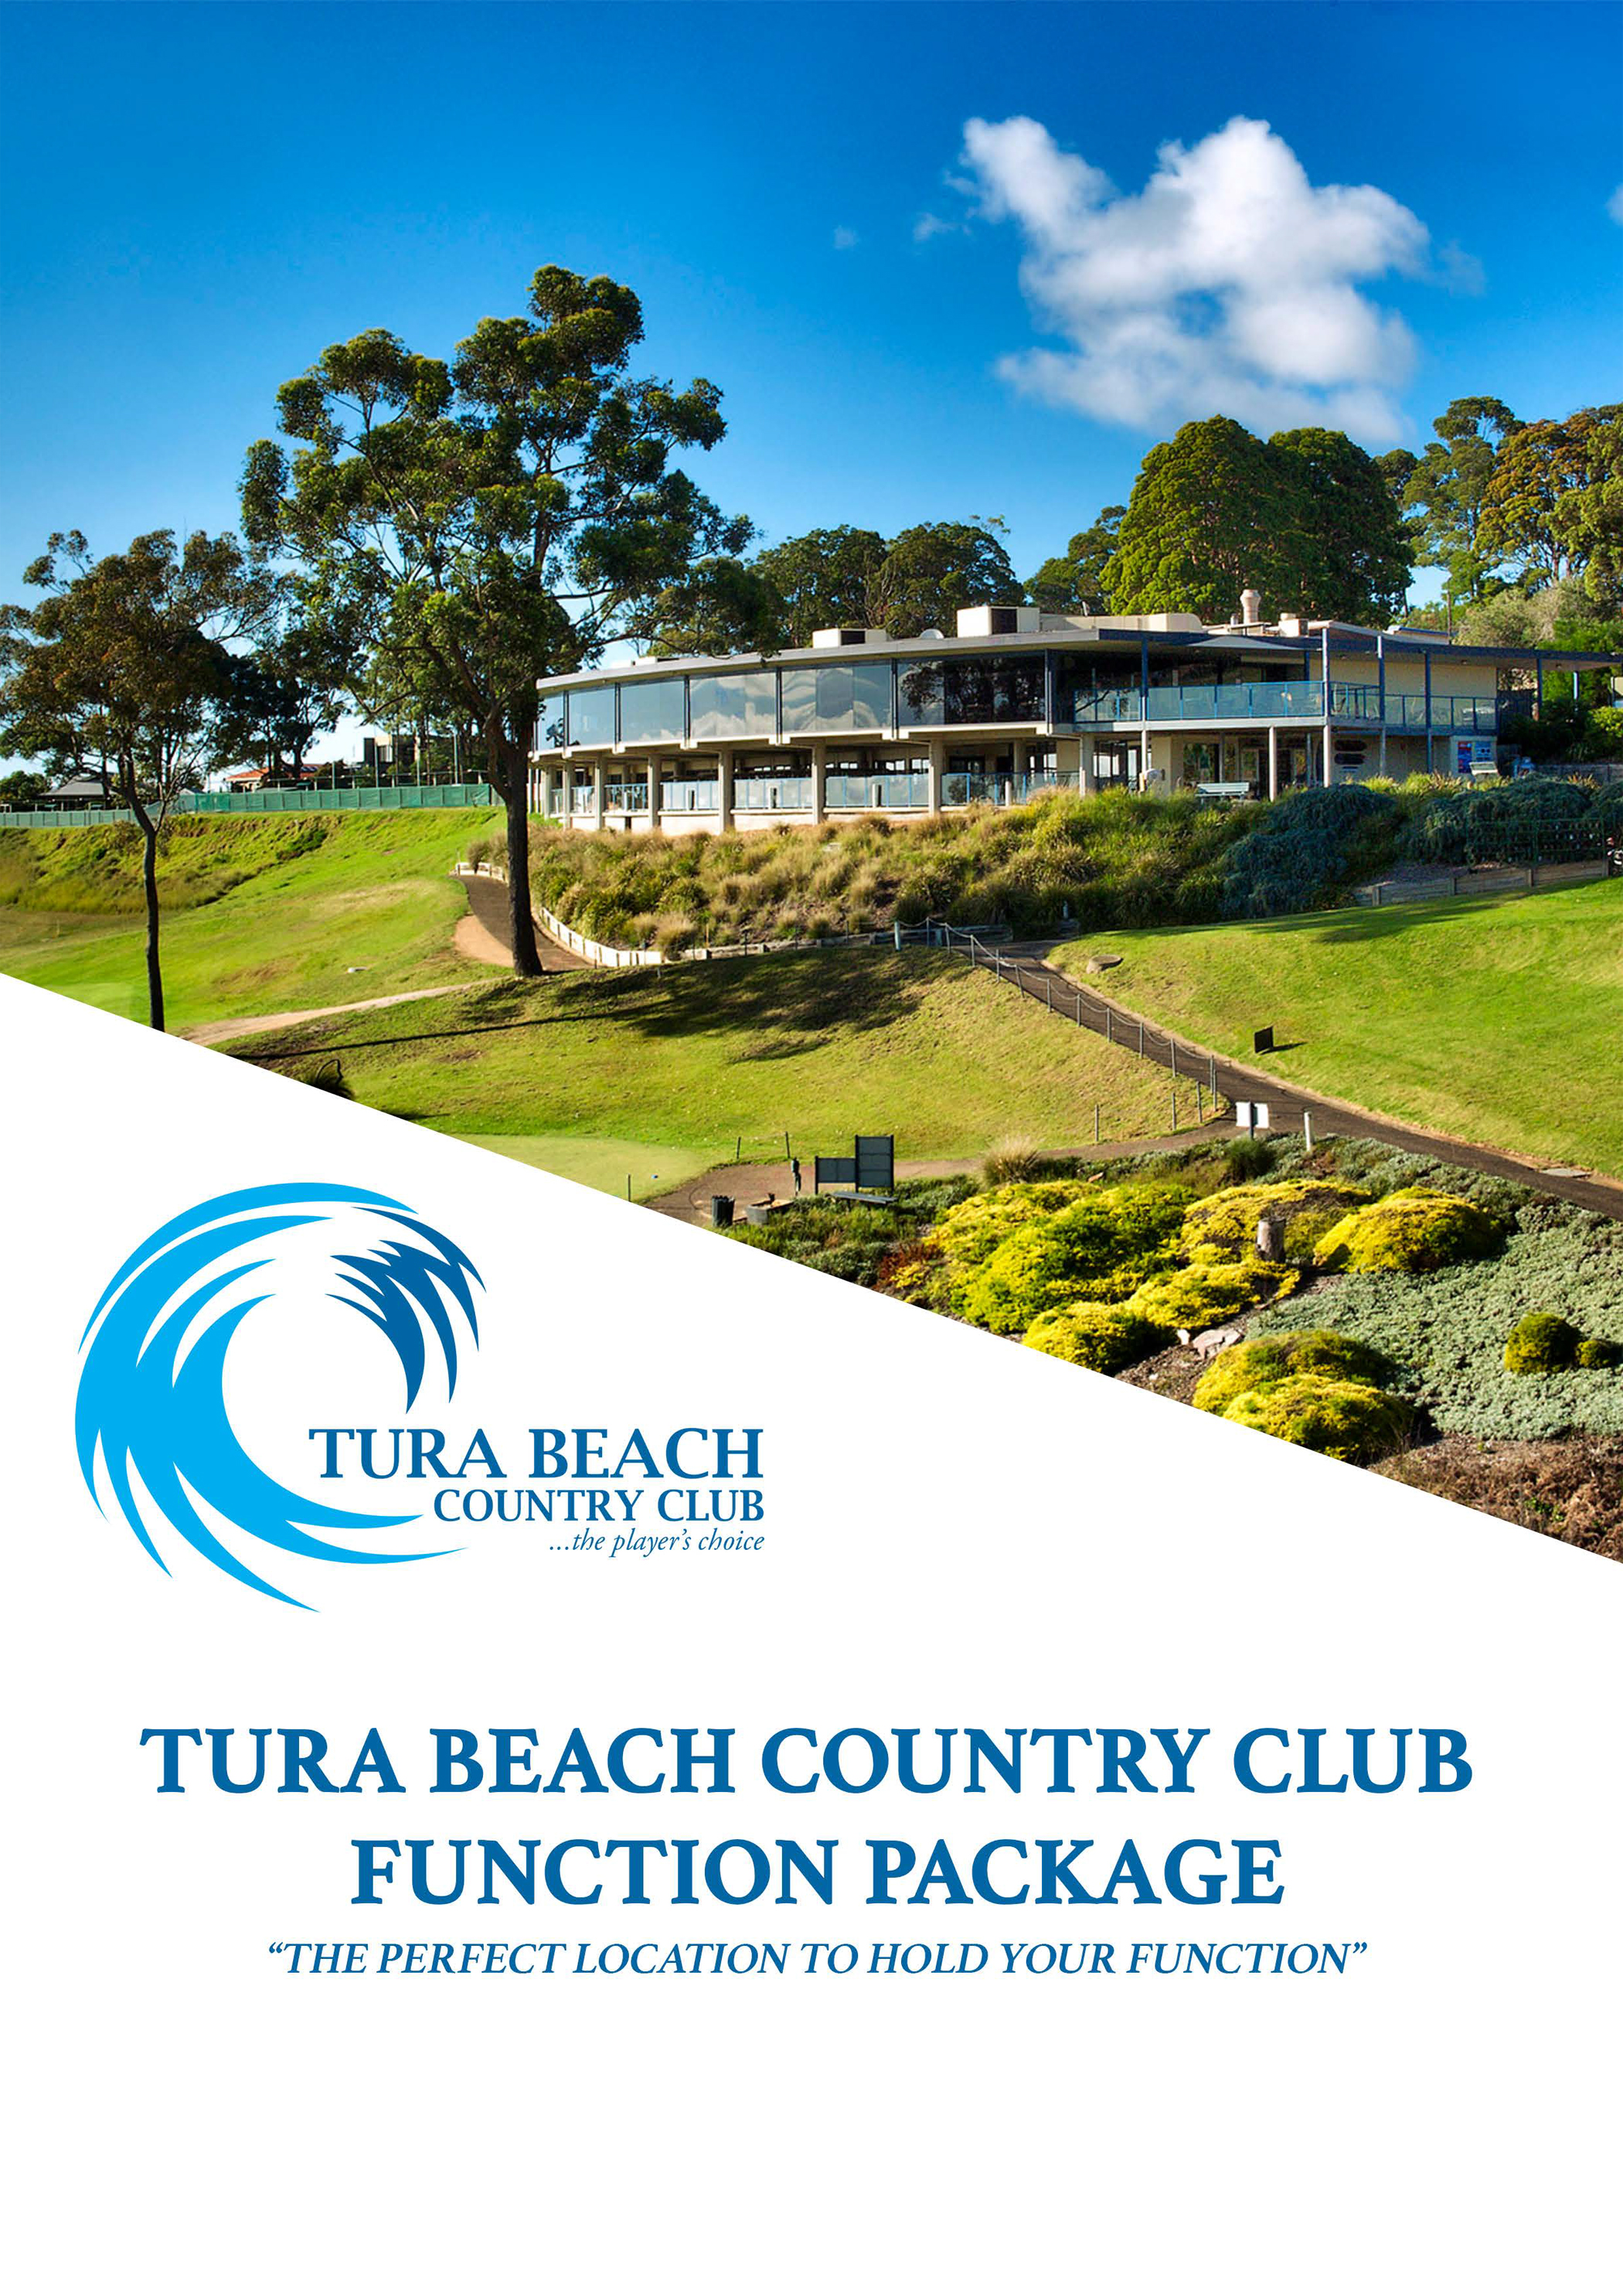 functions at Tura Beach Country Club